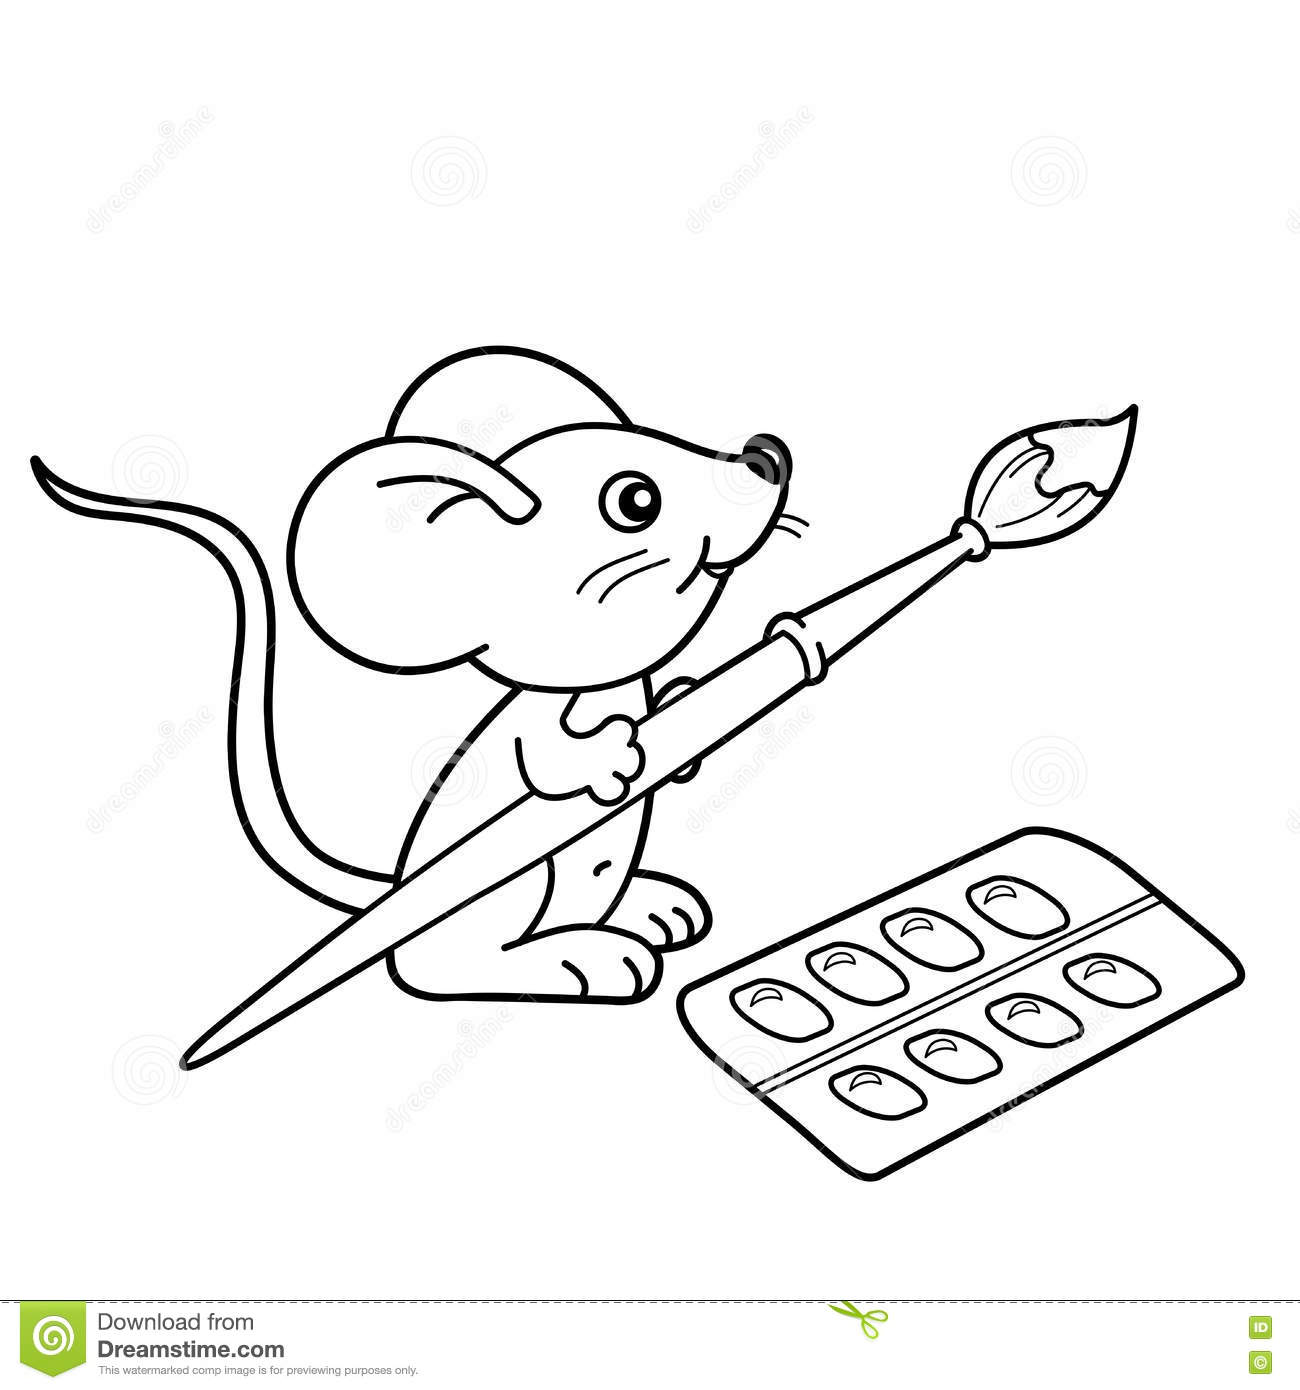 Online coloring with paint brush - Cartoon Paint Brushes Coloring Page Stock Illustration Coloring Page Outline Cartoon Little Mouse Brush Paints